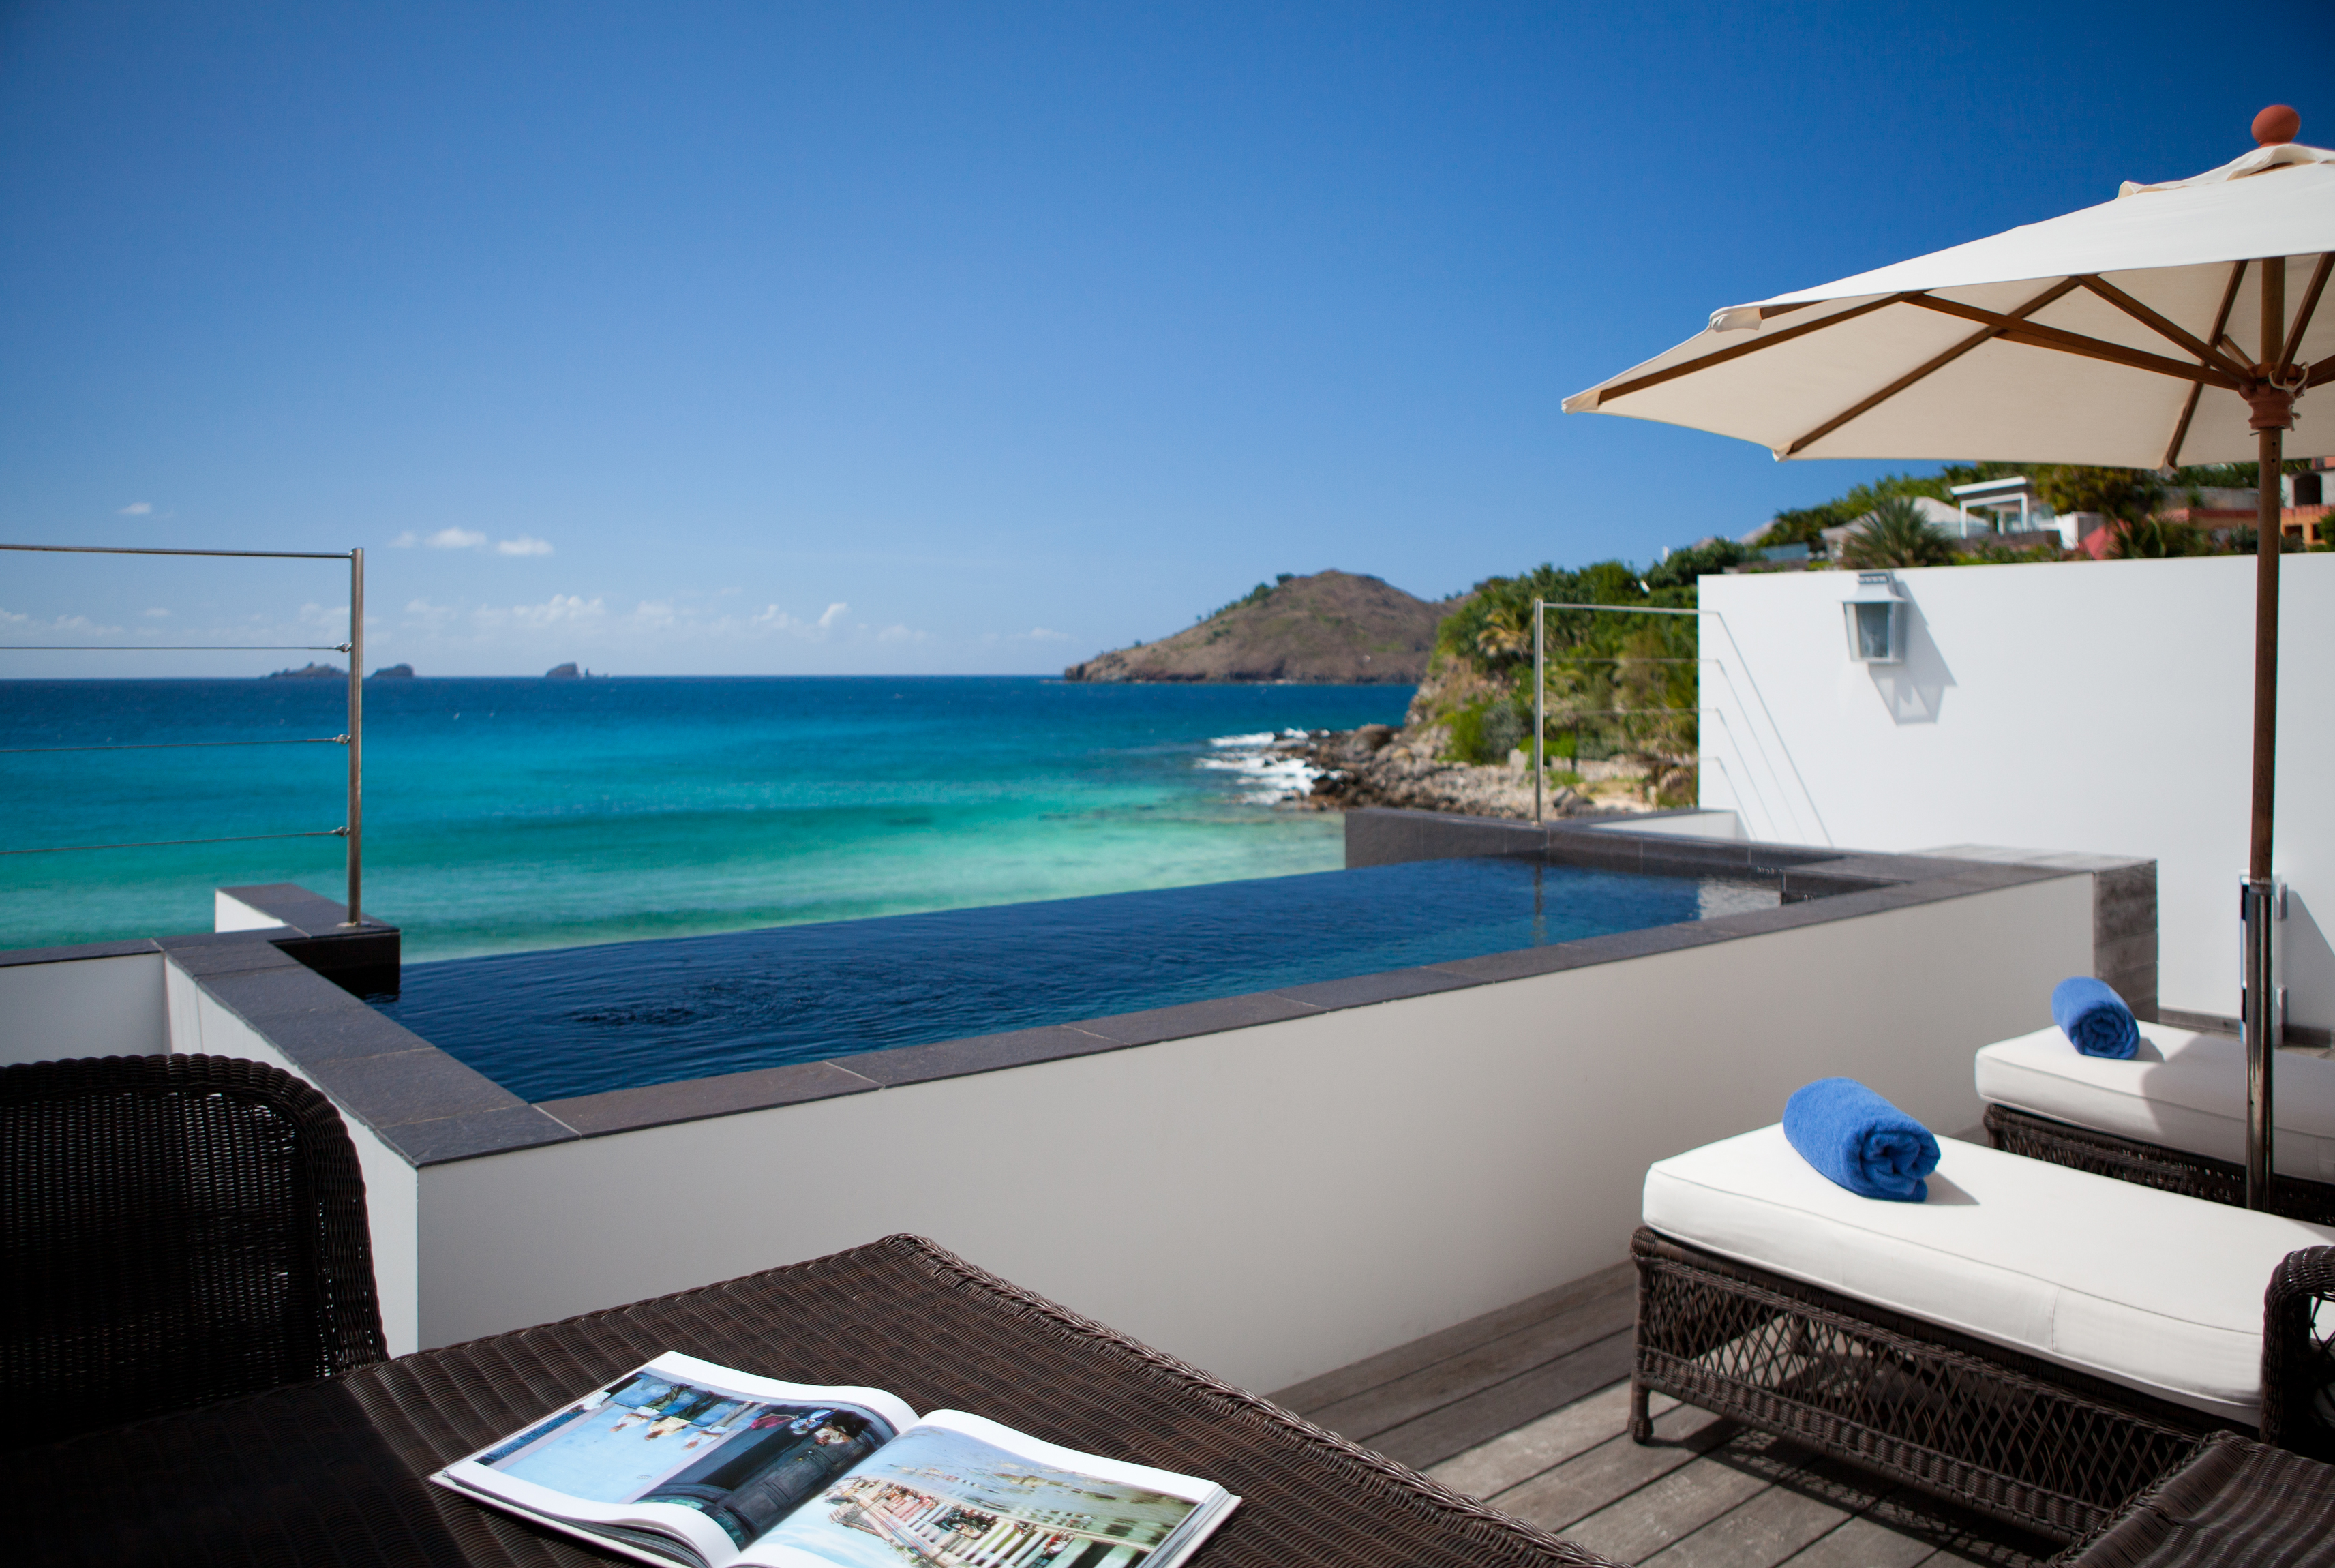 Terrace Pools lap in luxury: best pools in the caribbeanphaon spurlock